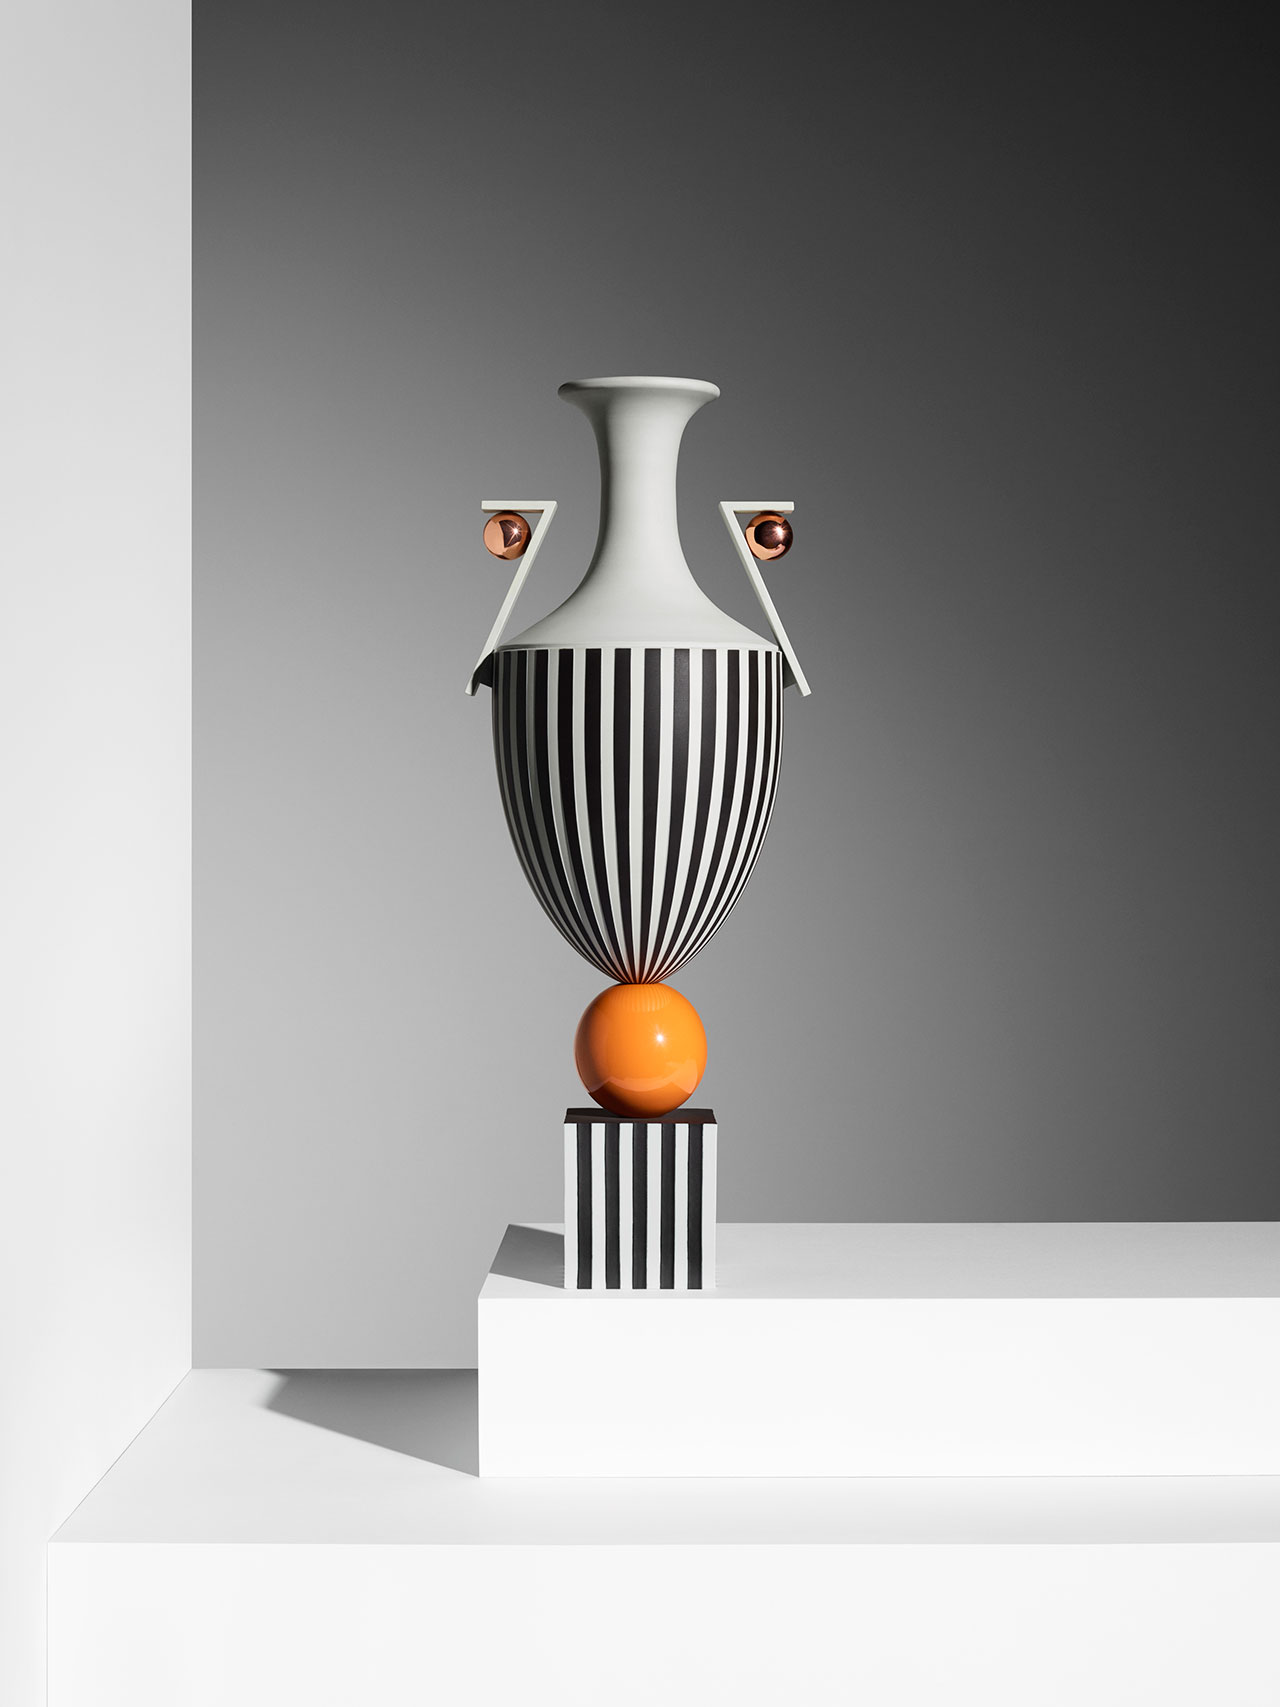 Wedgwood by Lee Broom, Bowl On Orange Sphere. Photo by Michael Bodiam.